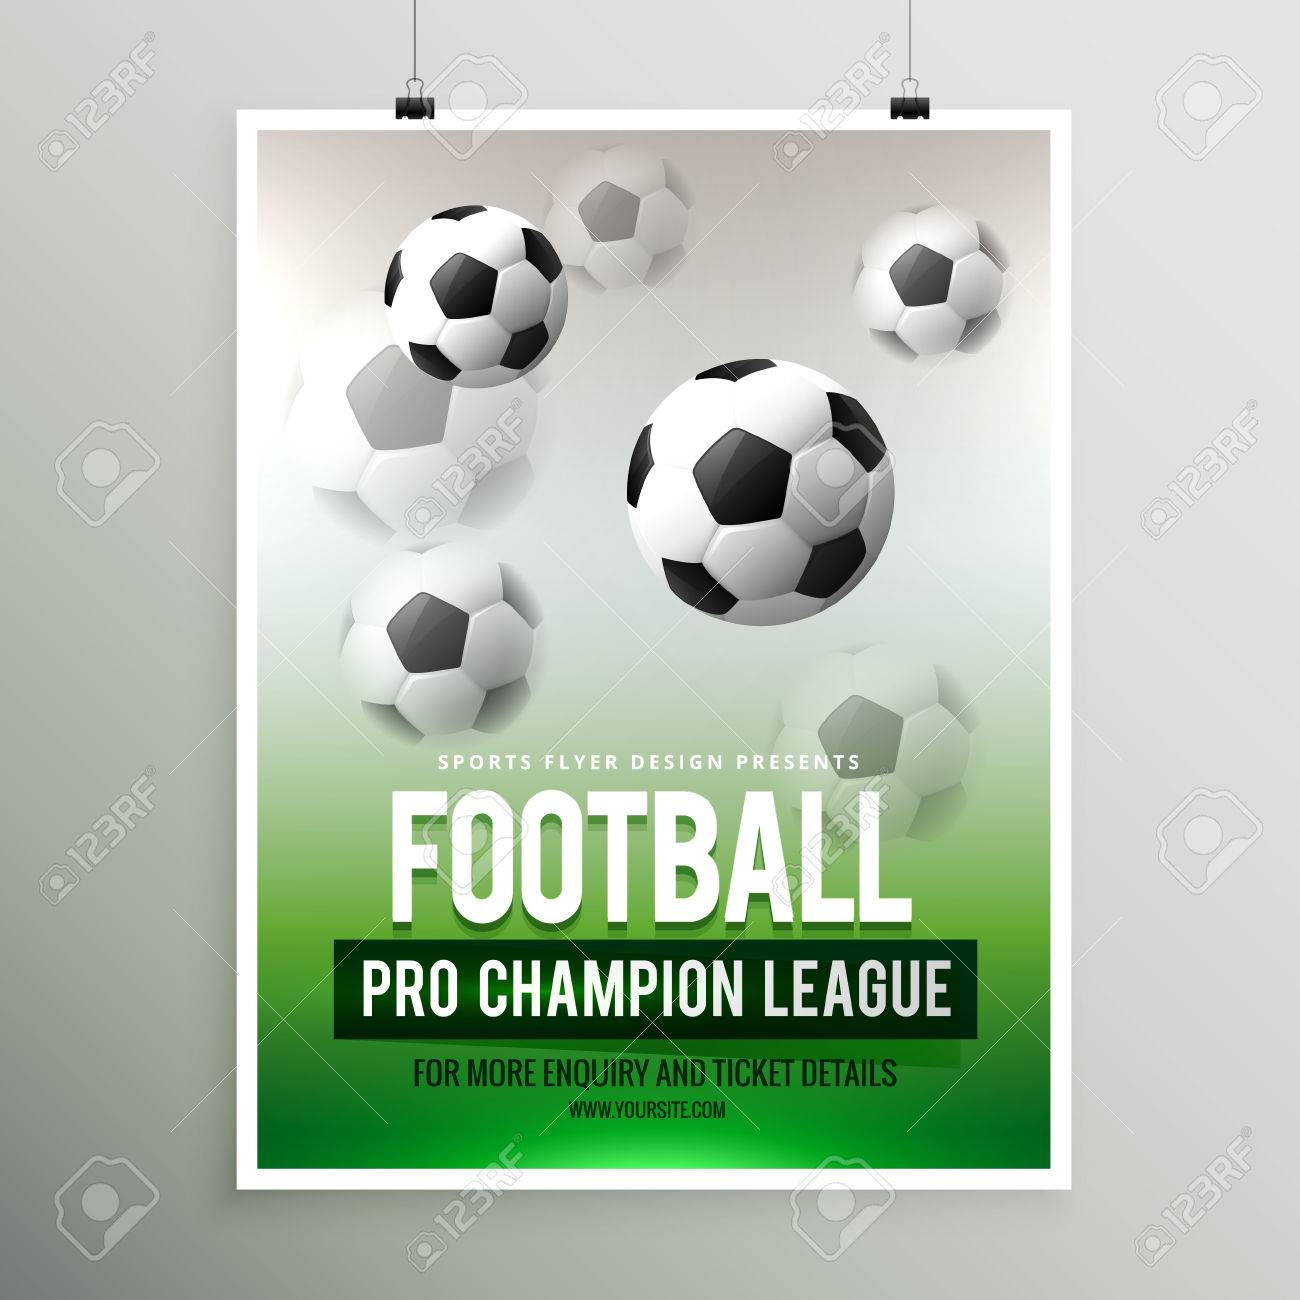 football pro championship league flyer template royalty free